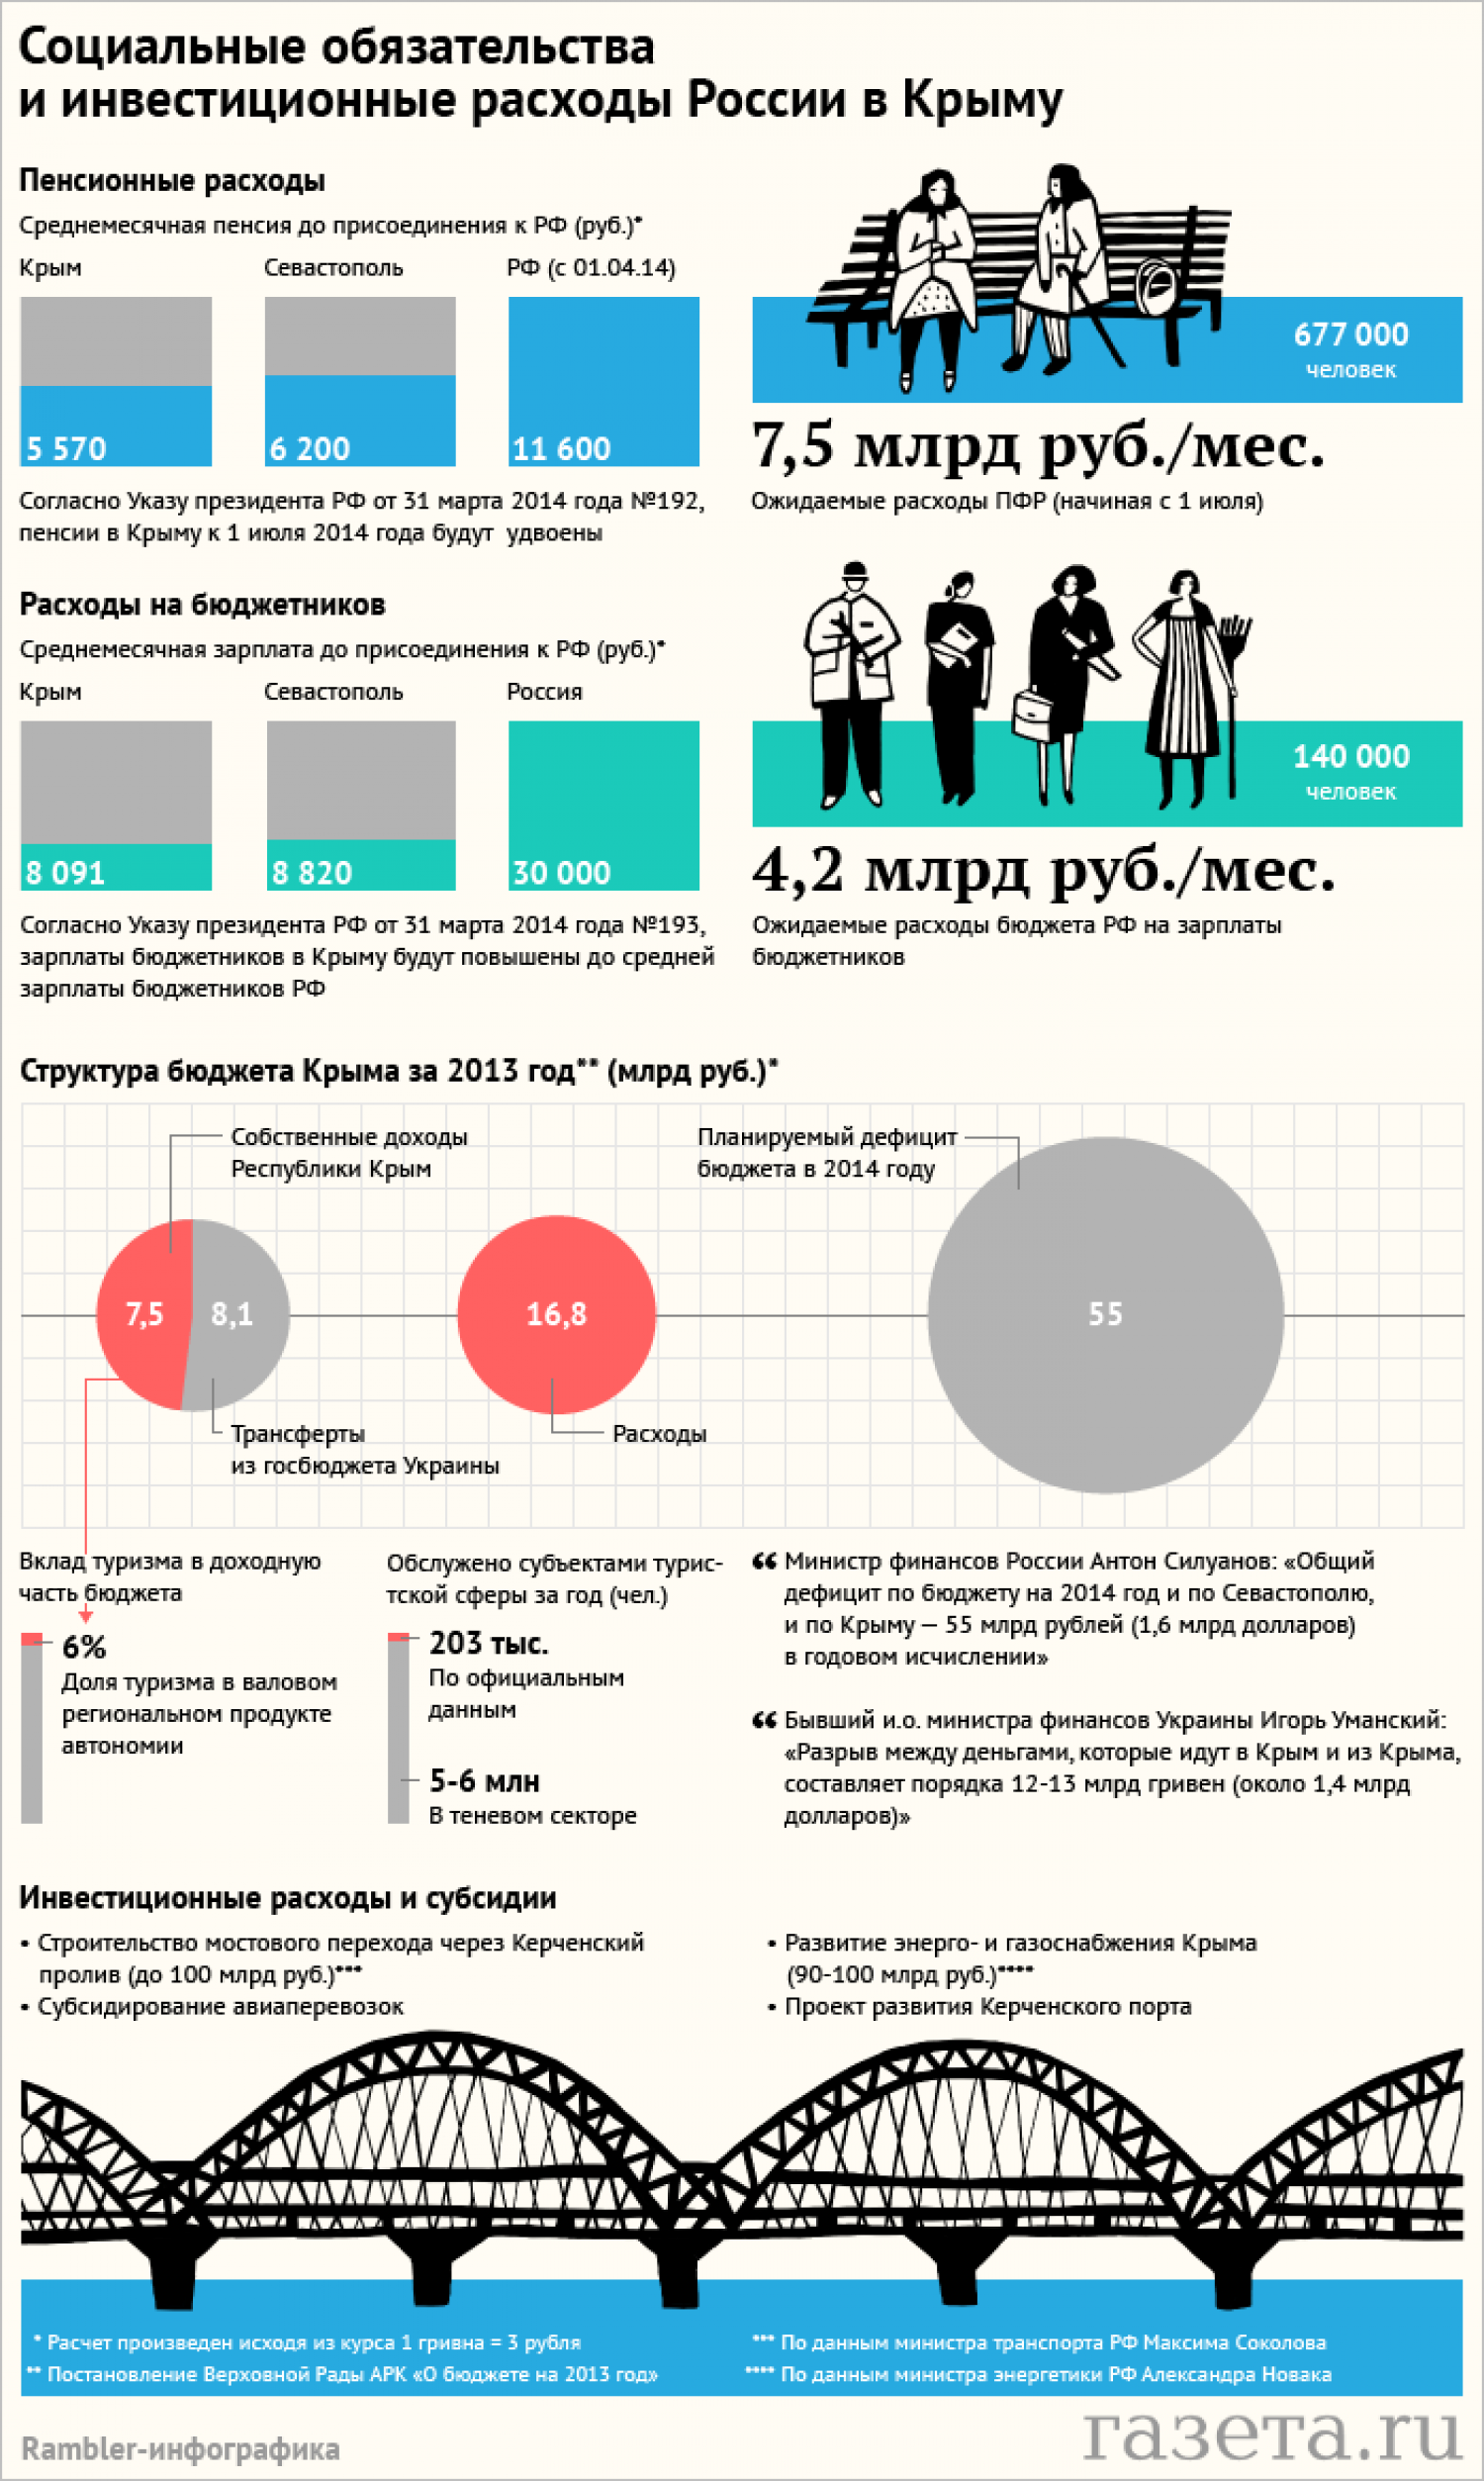 Russia Social Commitments in Crimea Infographic